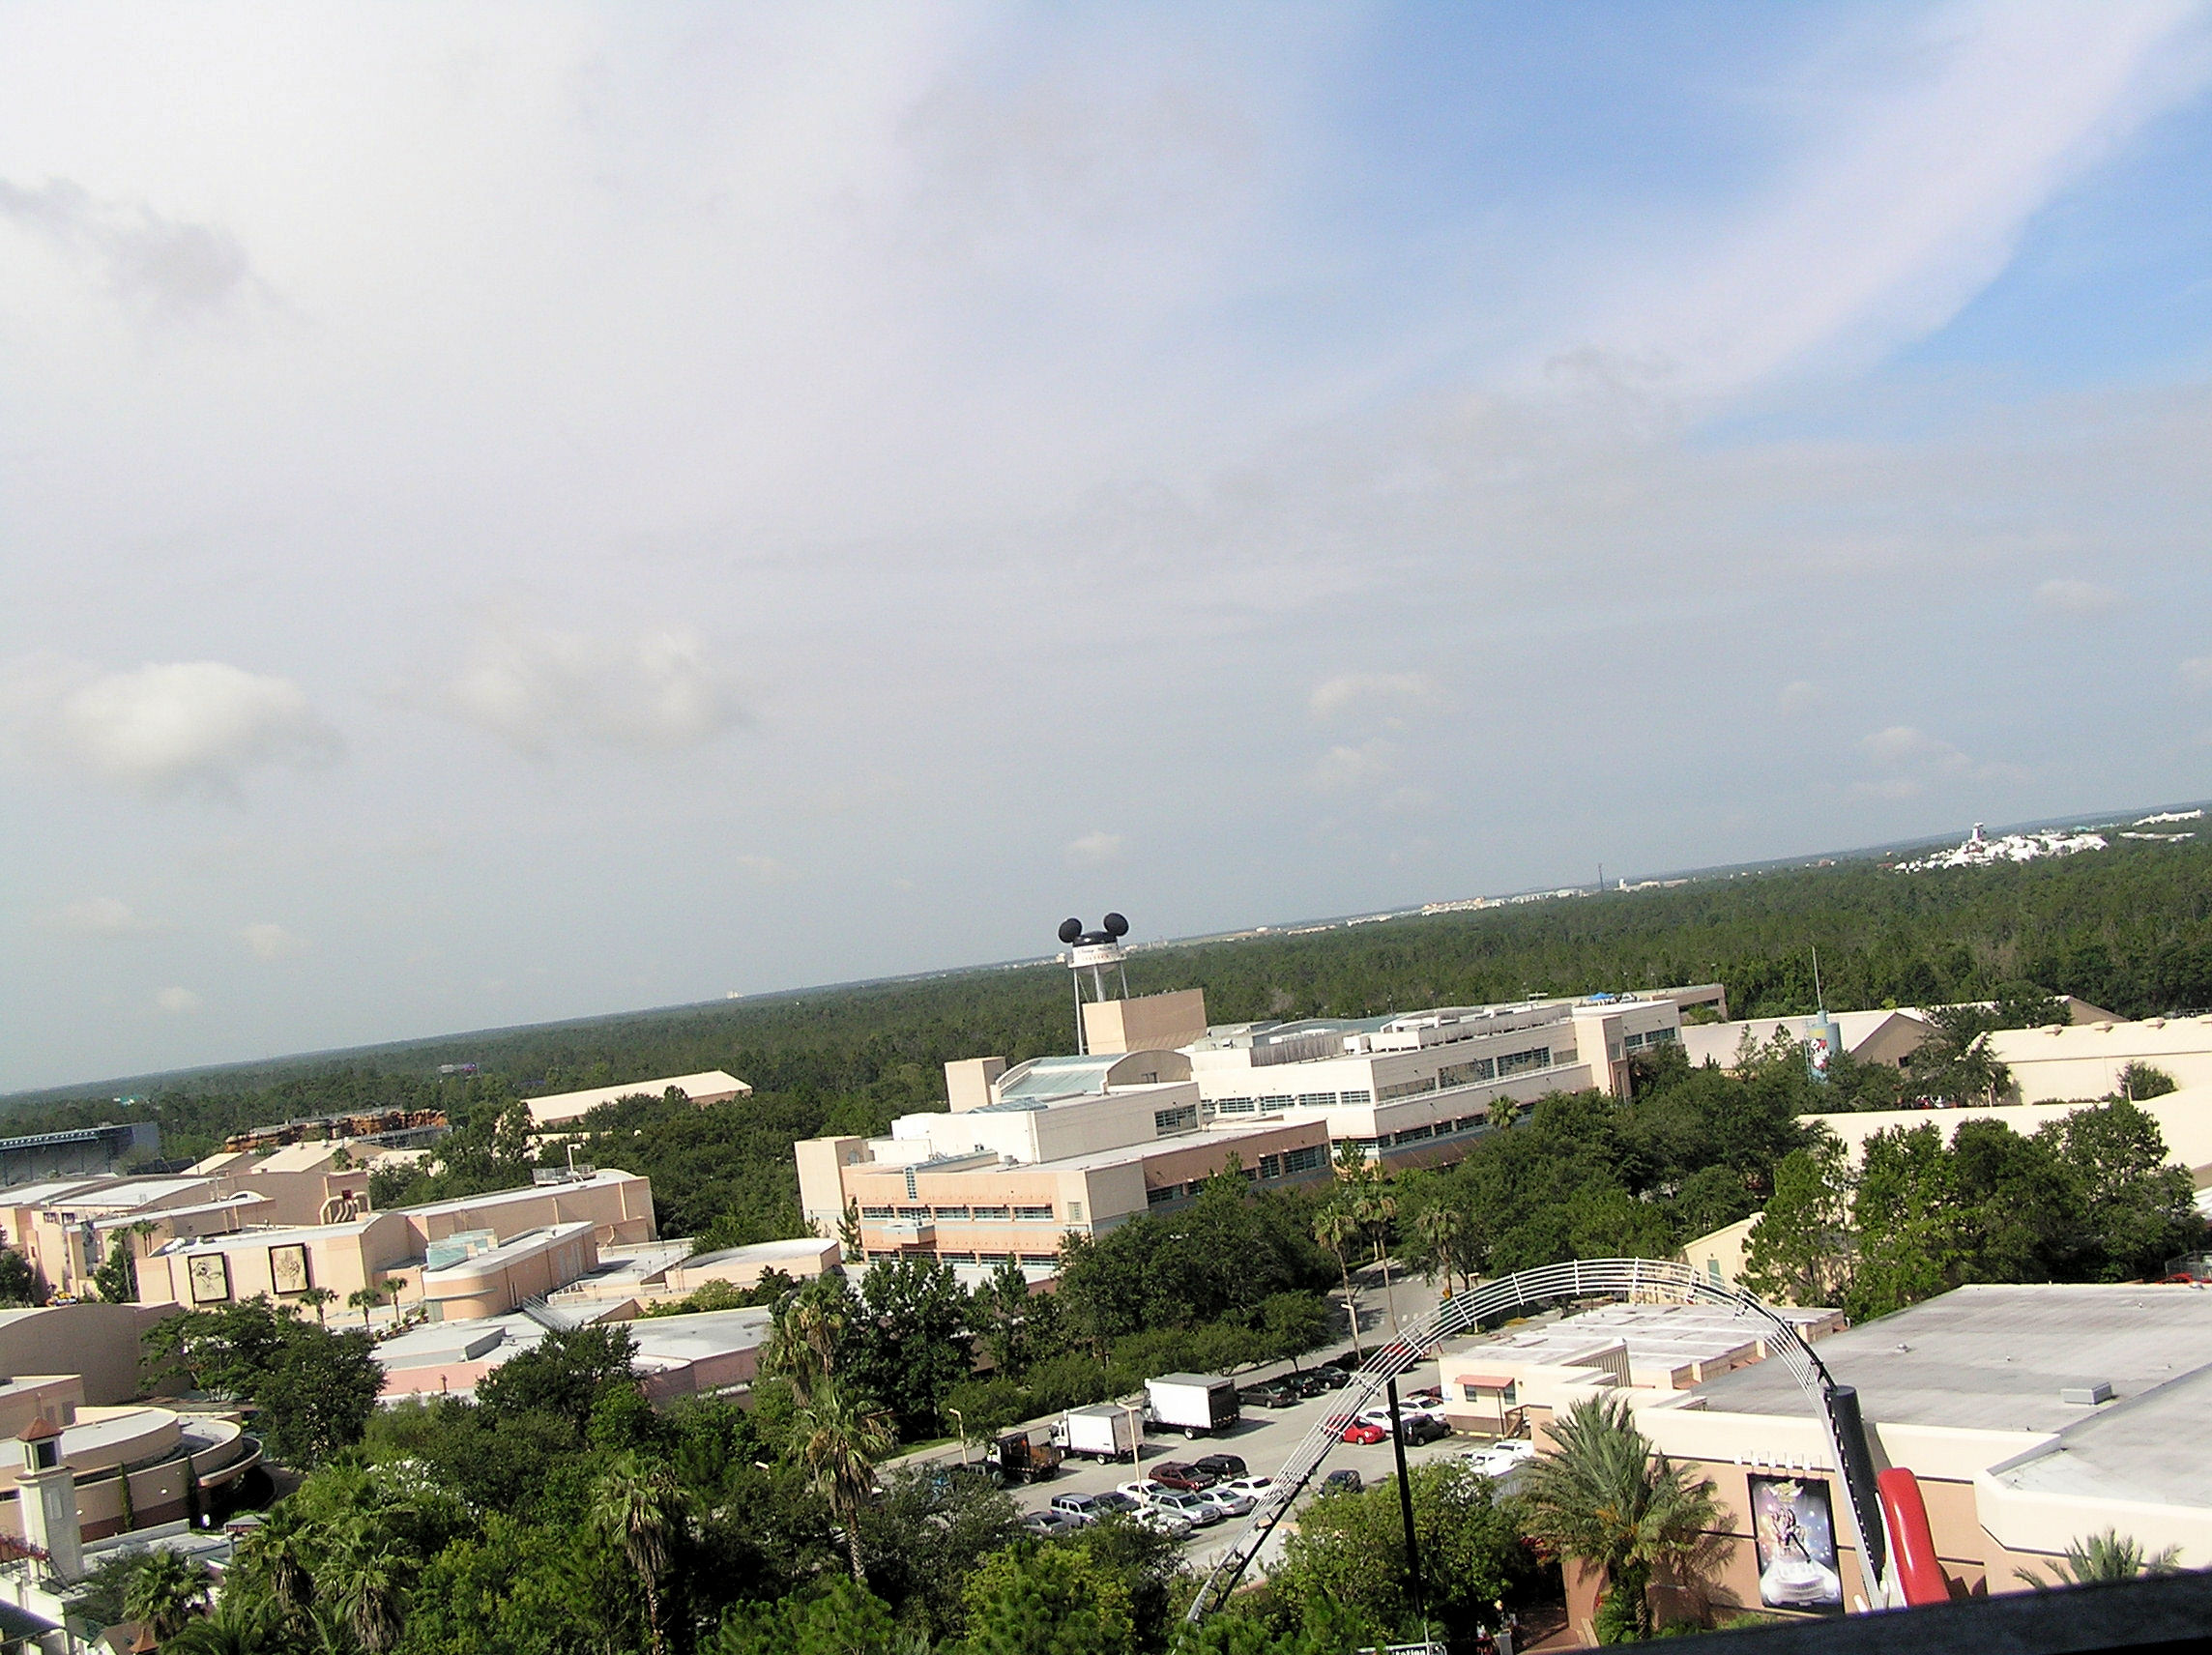 The view from the drop tower in the Tower of Terror at Disney's MGM Studios.